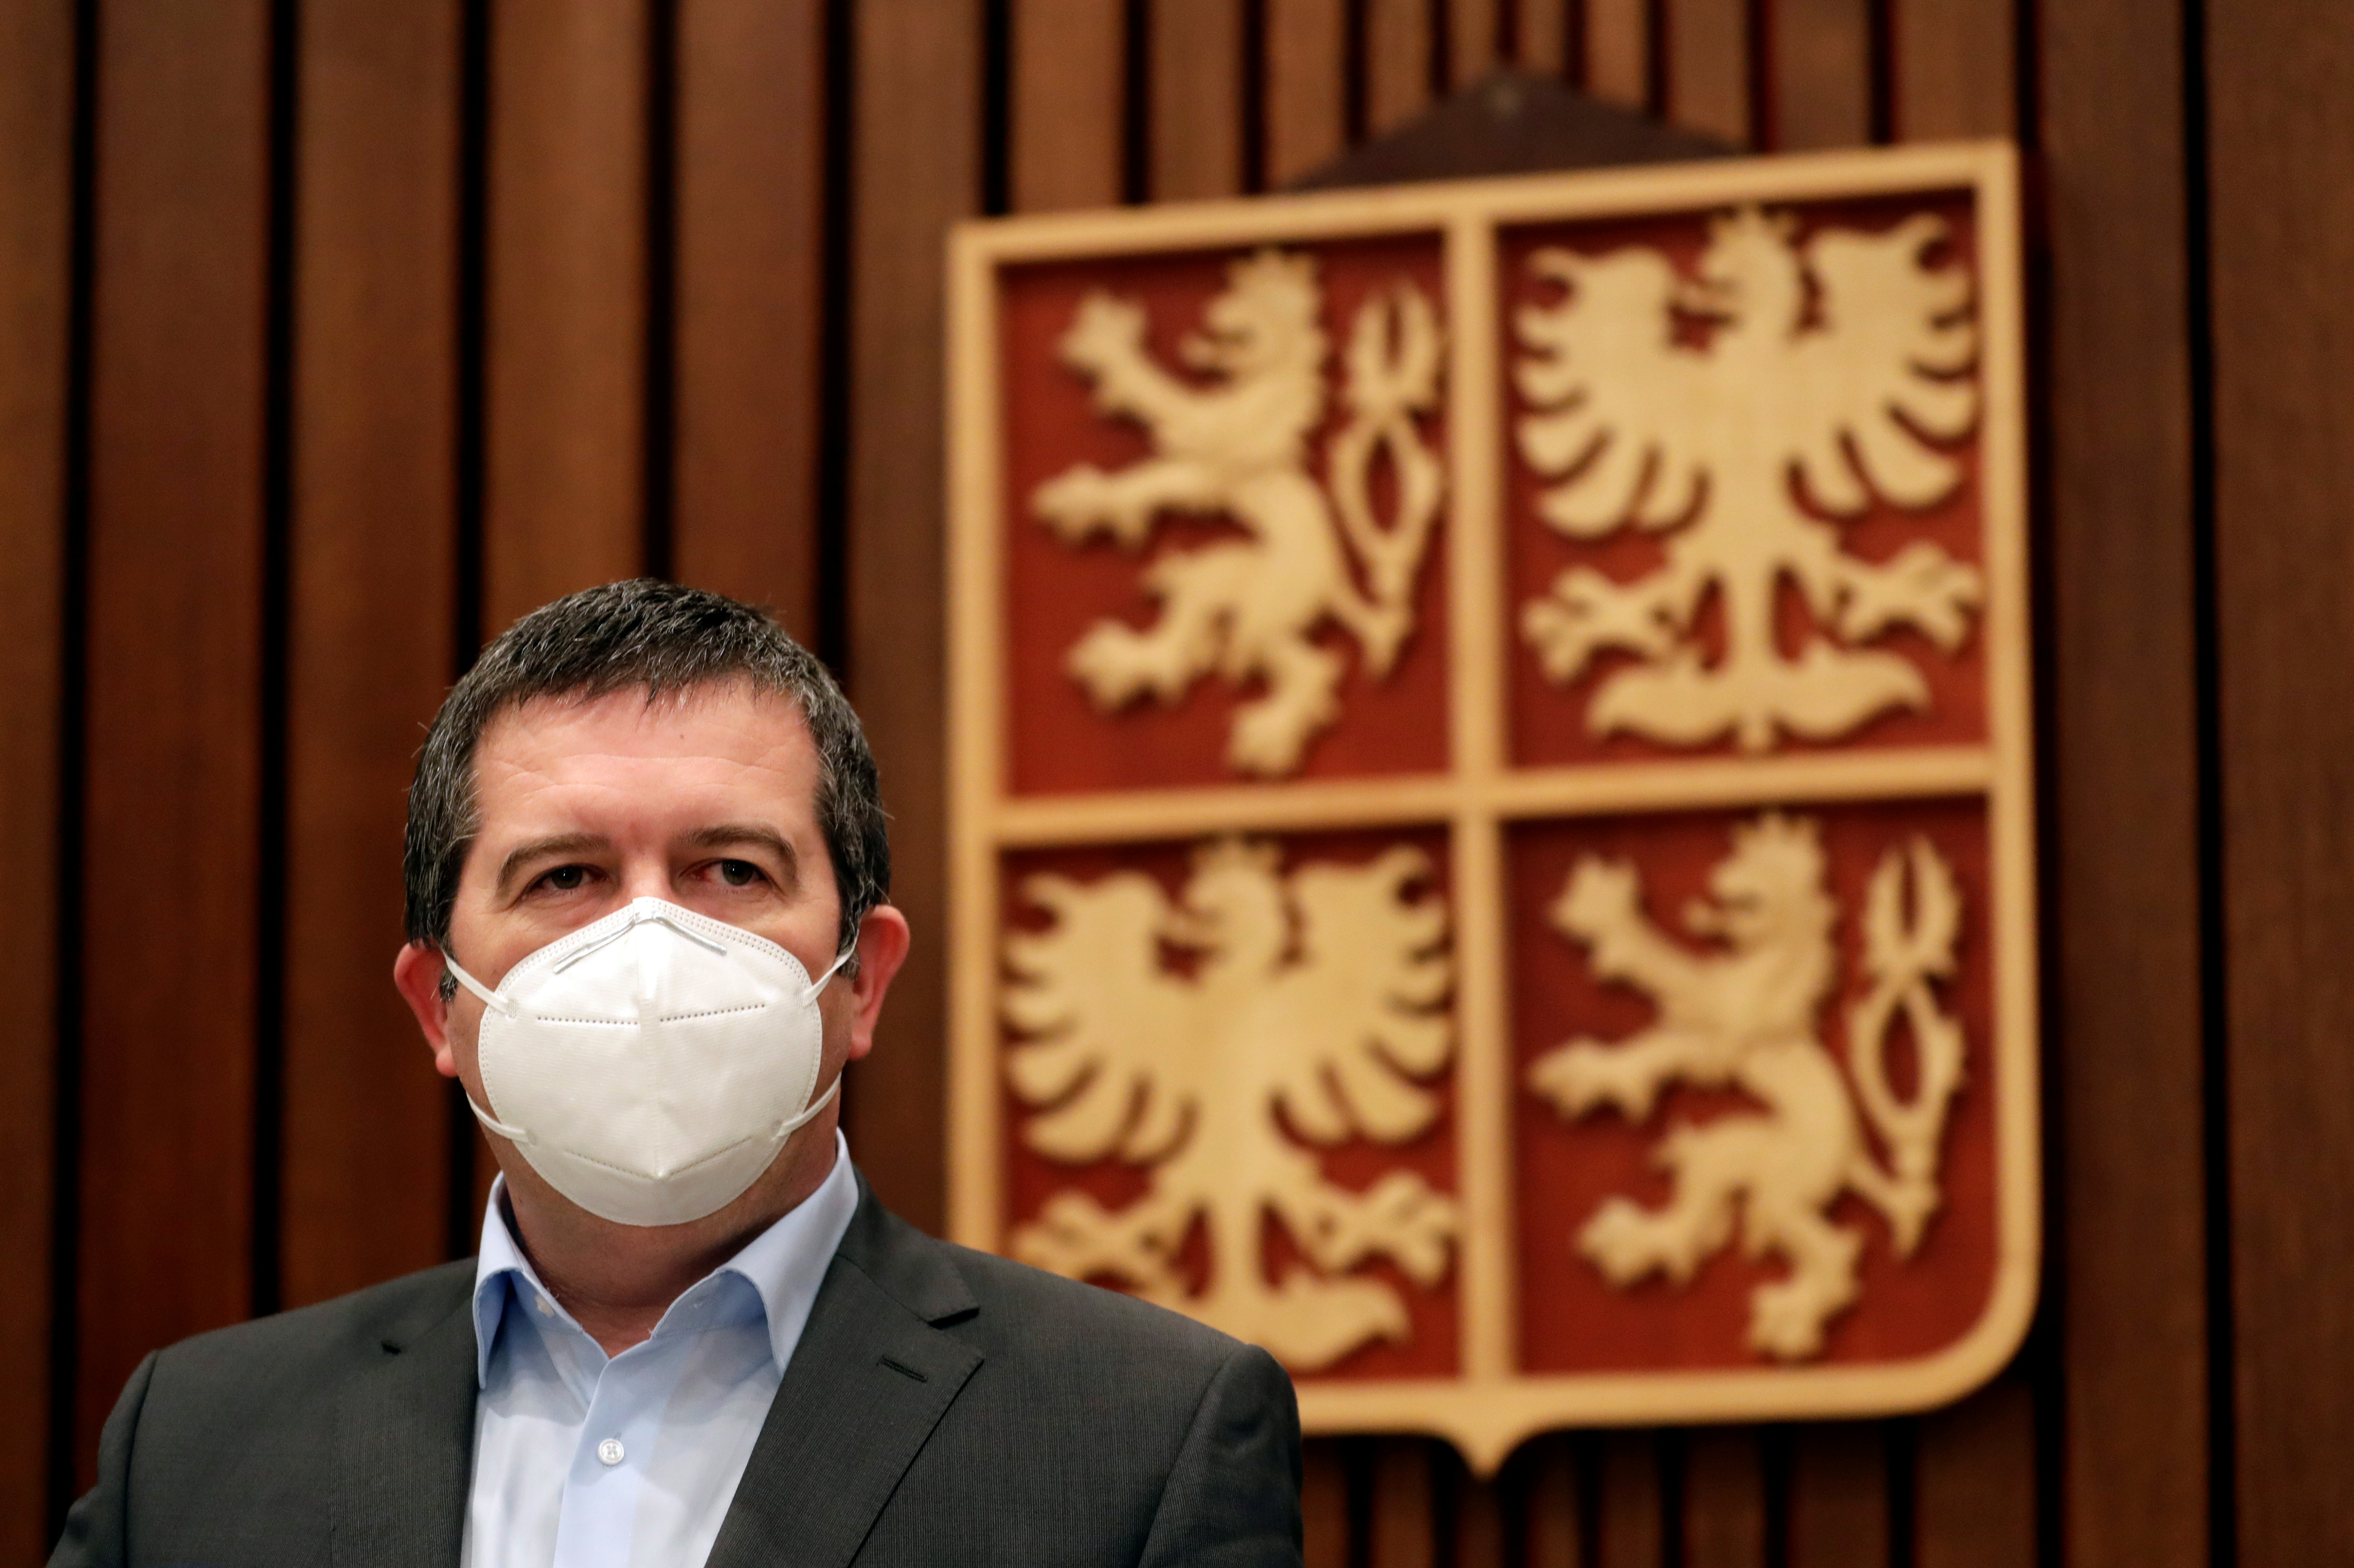 Czech Minister of Foreign Affairs Jan Hamacek arrives to welcome Czech diplomats expelled from Russia at Vaclav Havel Airport in Prague, Czech Republic April 19, 2021. REUTERS/David W Cerny